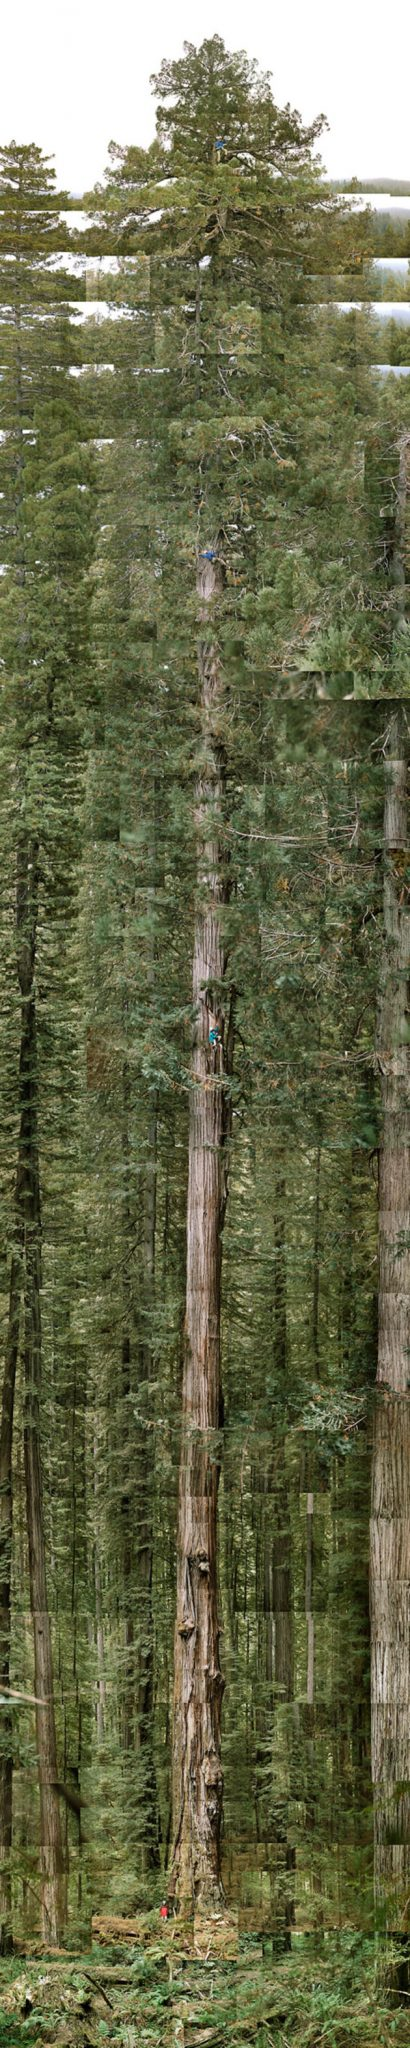 The Tallest Tree in the World - Stratosfere Giant